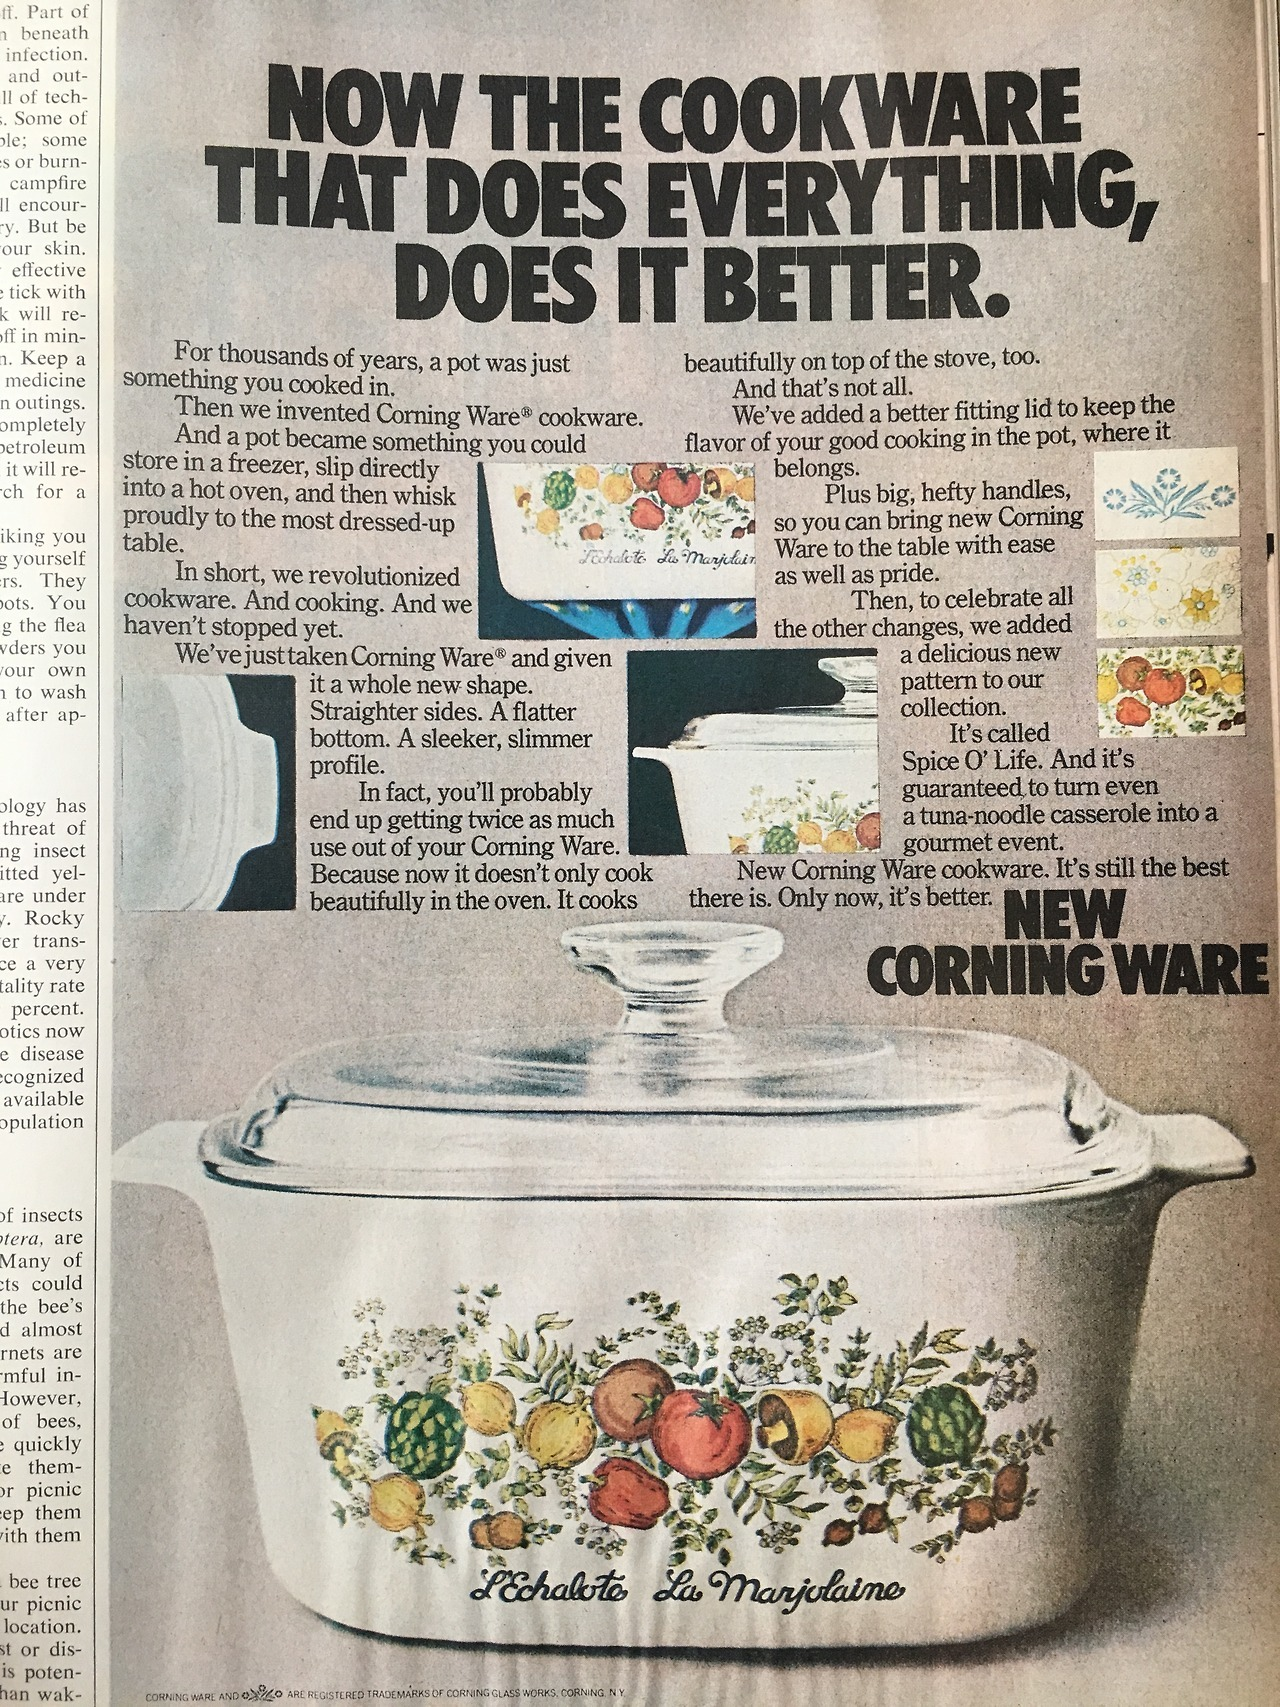 Corning Ware announcing new changes and the new Spice O' Life pattern.   Better Home and Gardens. June 1974.  In 1972, Corning Ware made some changes to the original design and decided to add some new patterns alongside the iconic blue cornflower design. Although this ad ran in 1974, Spice O' Life (also known as French Spice) was introduced in 1972 and if you grew up in the'70s and'80s, it's pretty much a guarantee that someone in your family had this pattern. Spice O' Life was in production until 1987 and is the second most sought after pattern among collectors. Personally, I own the very rare, but  very' 70s folk-art inspired Country Festival pattern.